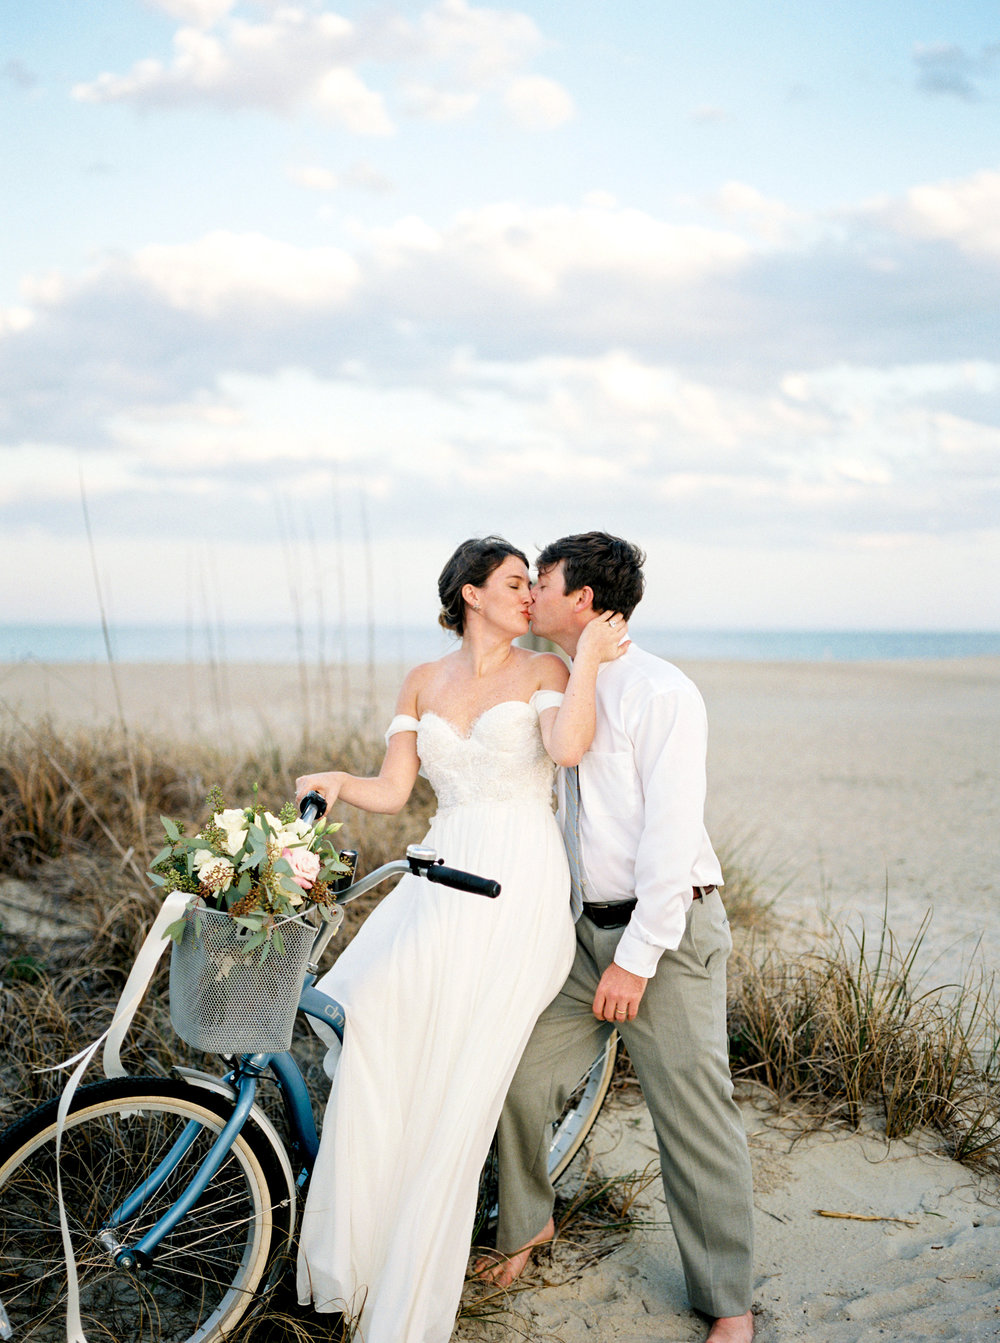 marianne-lucille-photography-jleslie-decor-tybee-wedding-sunset-wedding-beach-wedding-savannah-beach-wedding-sarah-seven-hayes-savannah-bridal-boutique-savannah-wedding-dresses-savannah-bridal-gowns-savannah-weddings-savannah-bridal-25.jpg